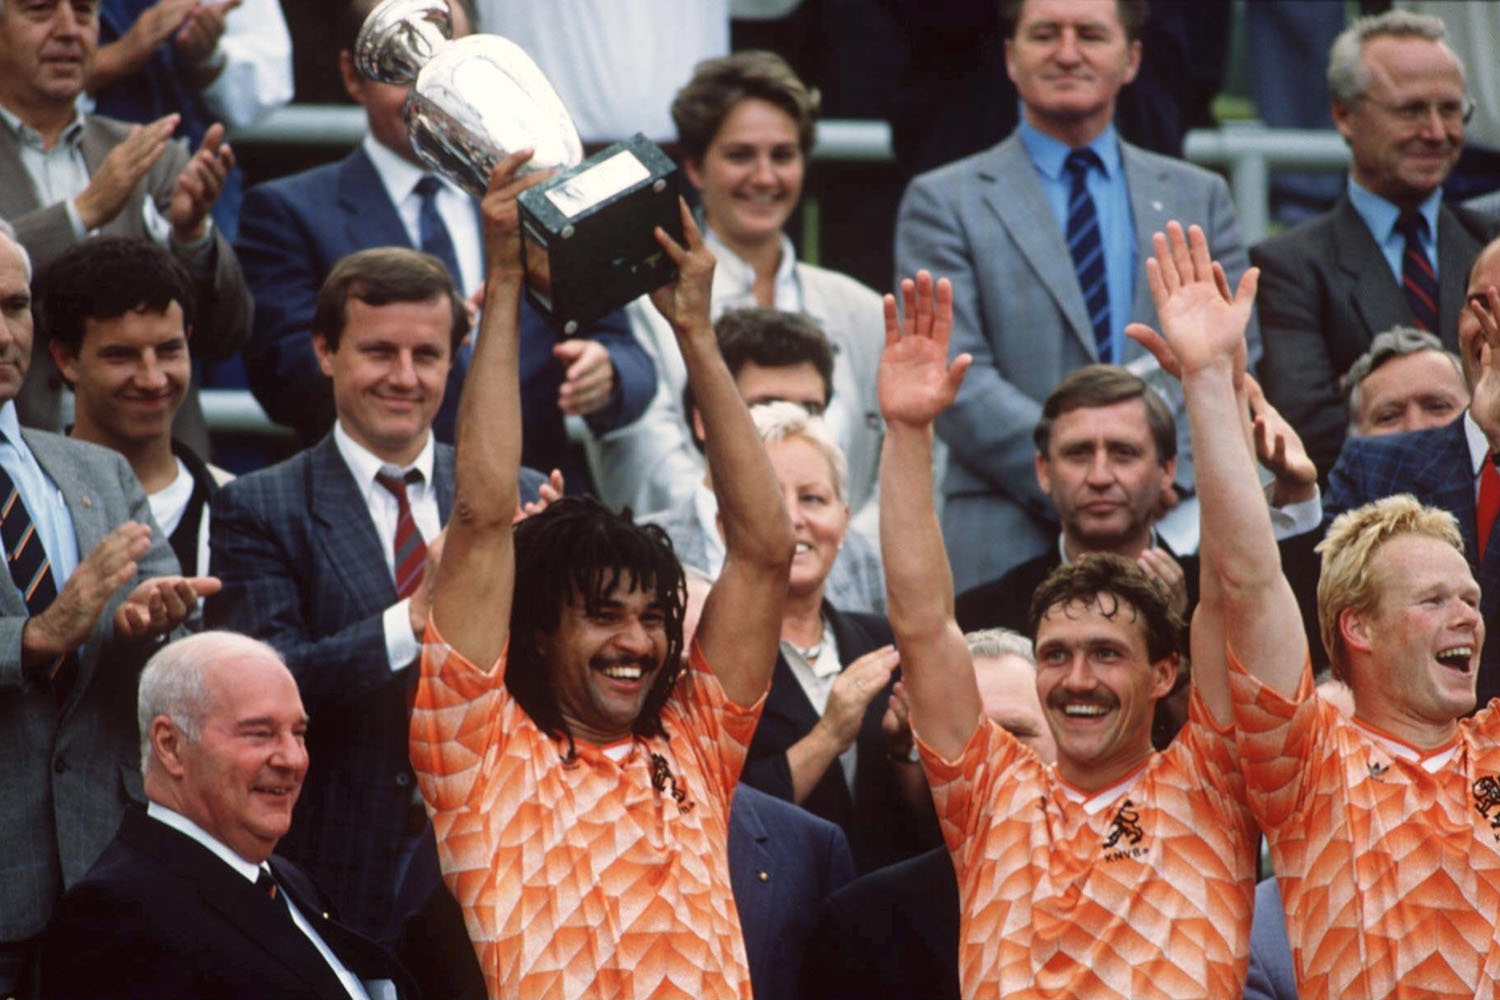 De Europese titel was in 1988 voor Nederland, GETTY